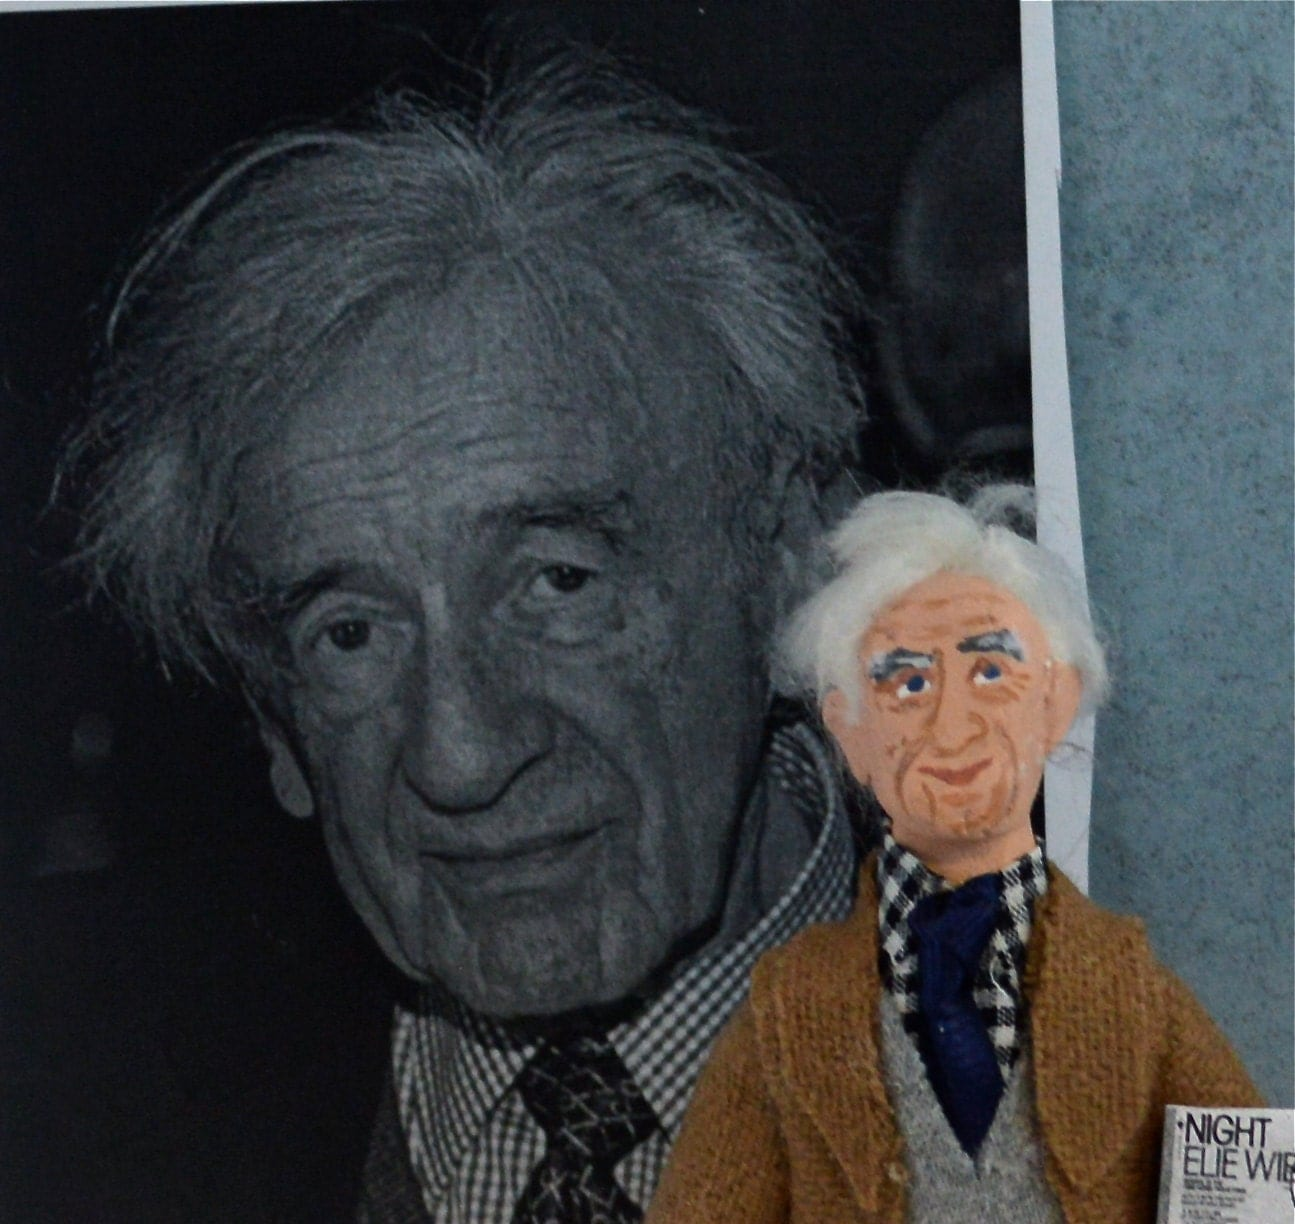 a history of elie wiesel a jewish american activist and author Holocaust survivor elie wiesel died on saturday, july 2 at age 87  corrections  and clarifications: an earlier version of this story misidentified the current  he  taught us about judaism, about israel, and about not being silent in the face of  injustice  holocaust activist and nobel peace prize recipient.